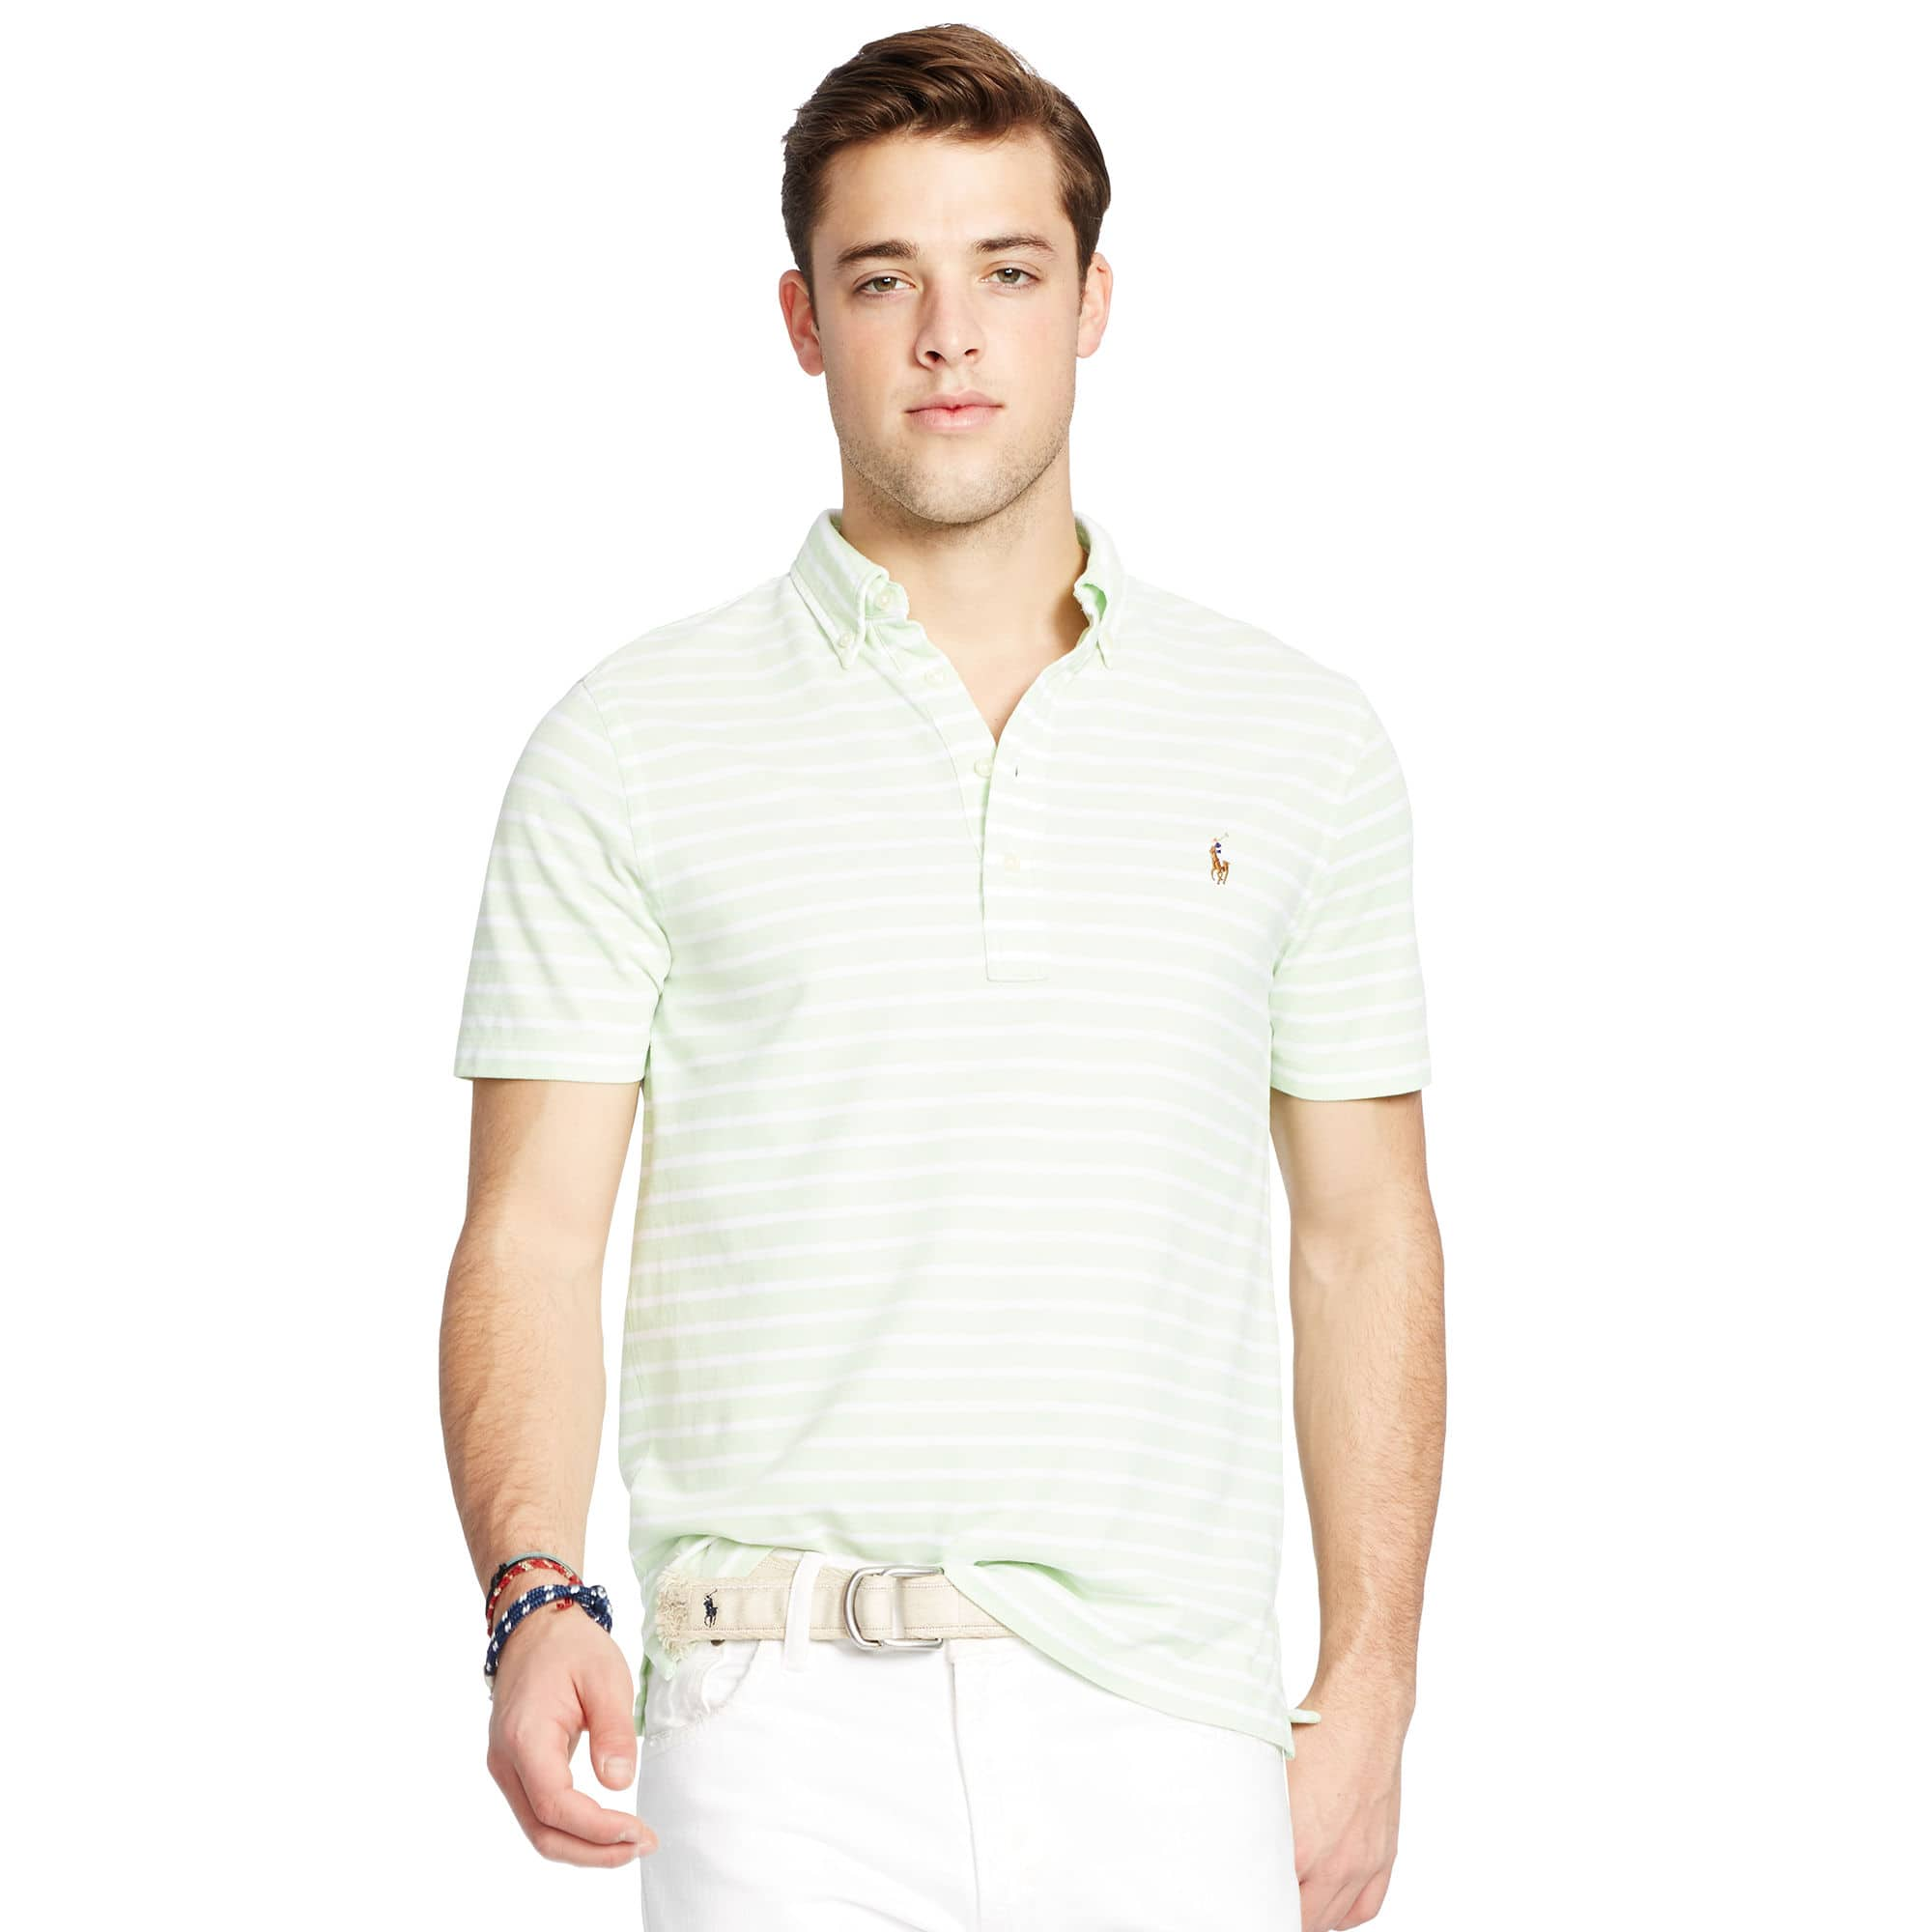 Polo Ralph Lauren Men's Polo Shirt  from $21 & Much More + Free S&H w/ ShopRunner